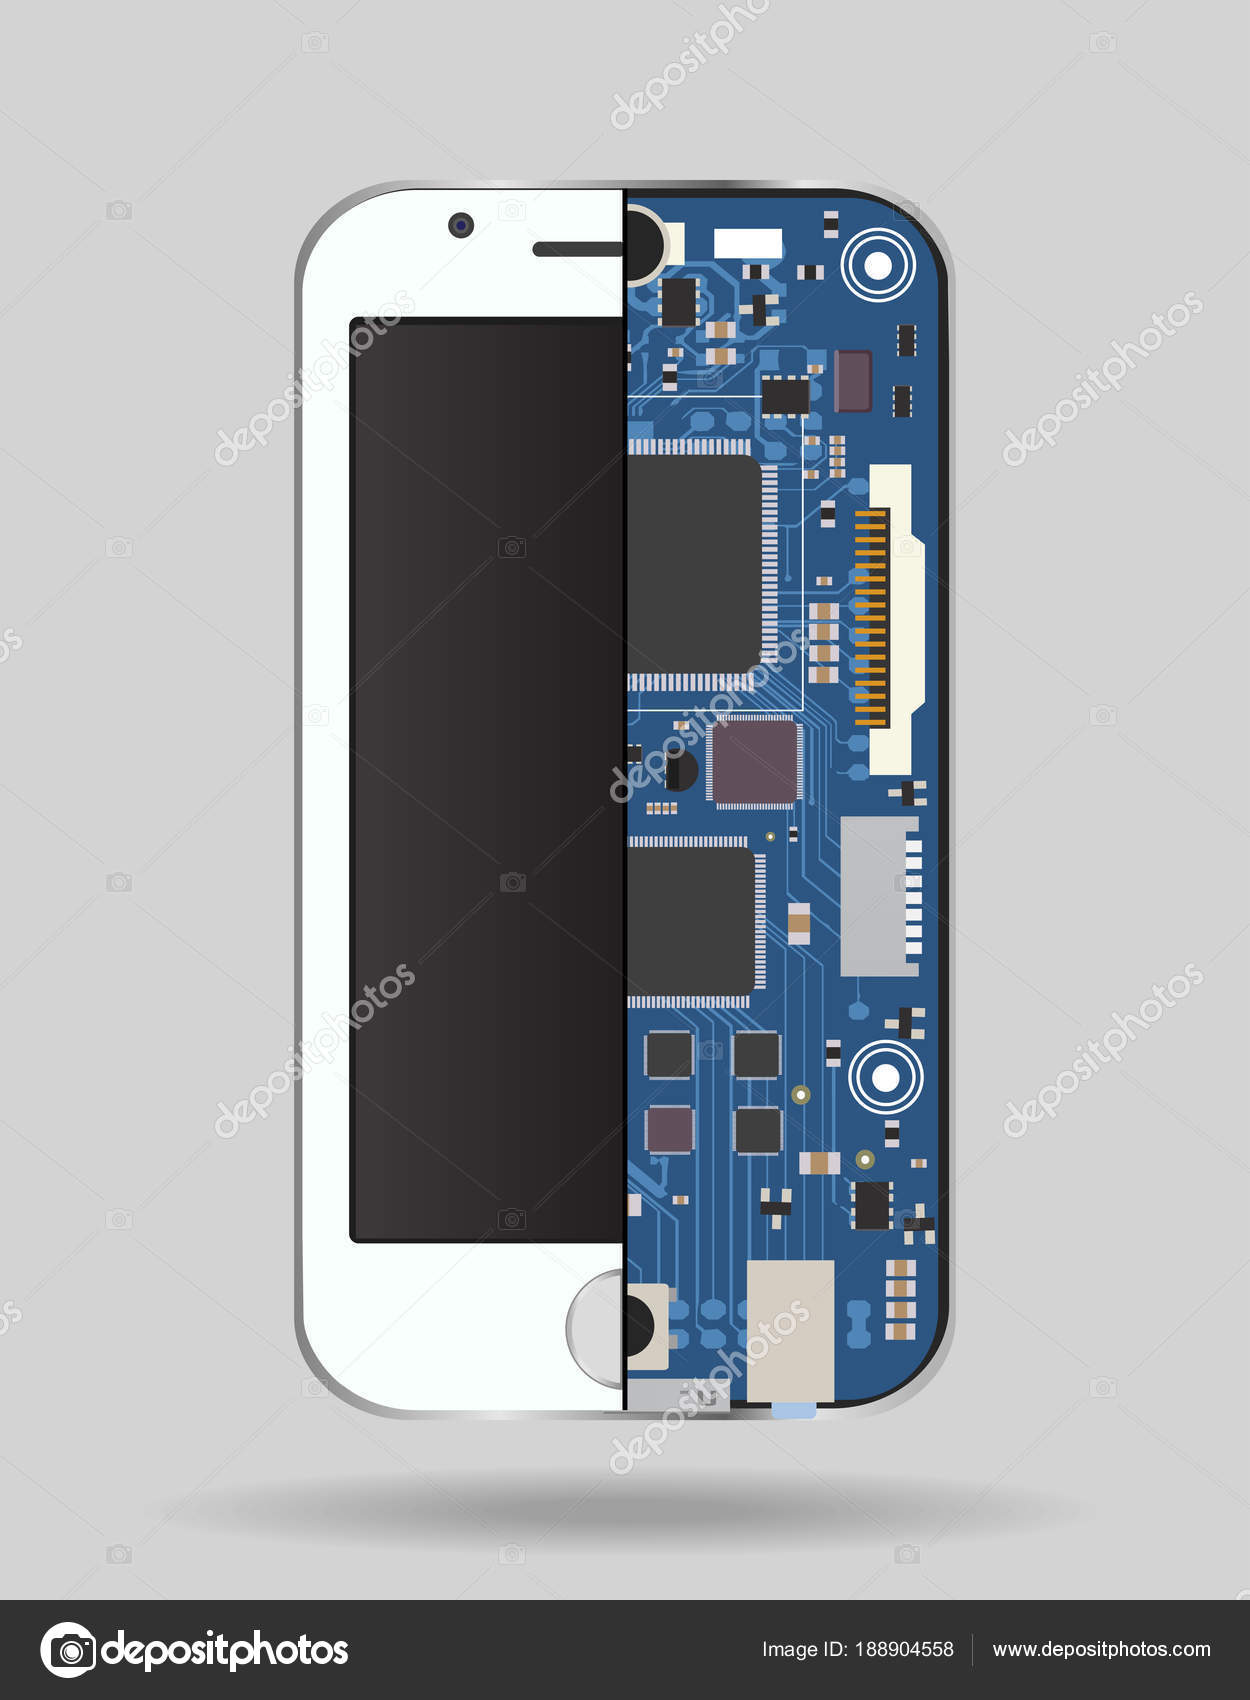 Internal phone device - circuit board, a microprocessor, a variety ...